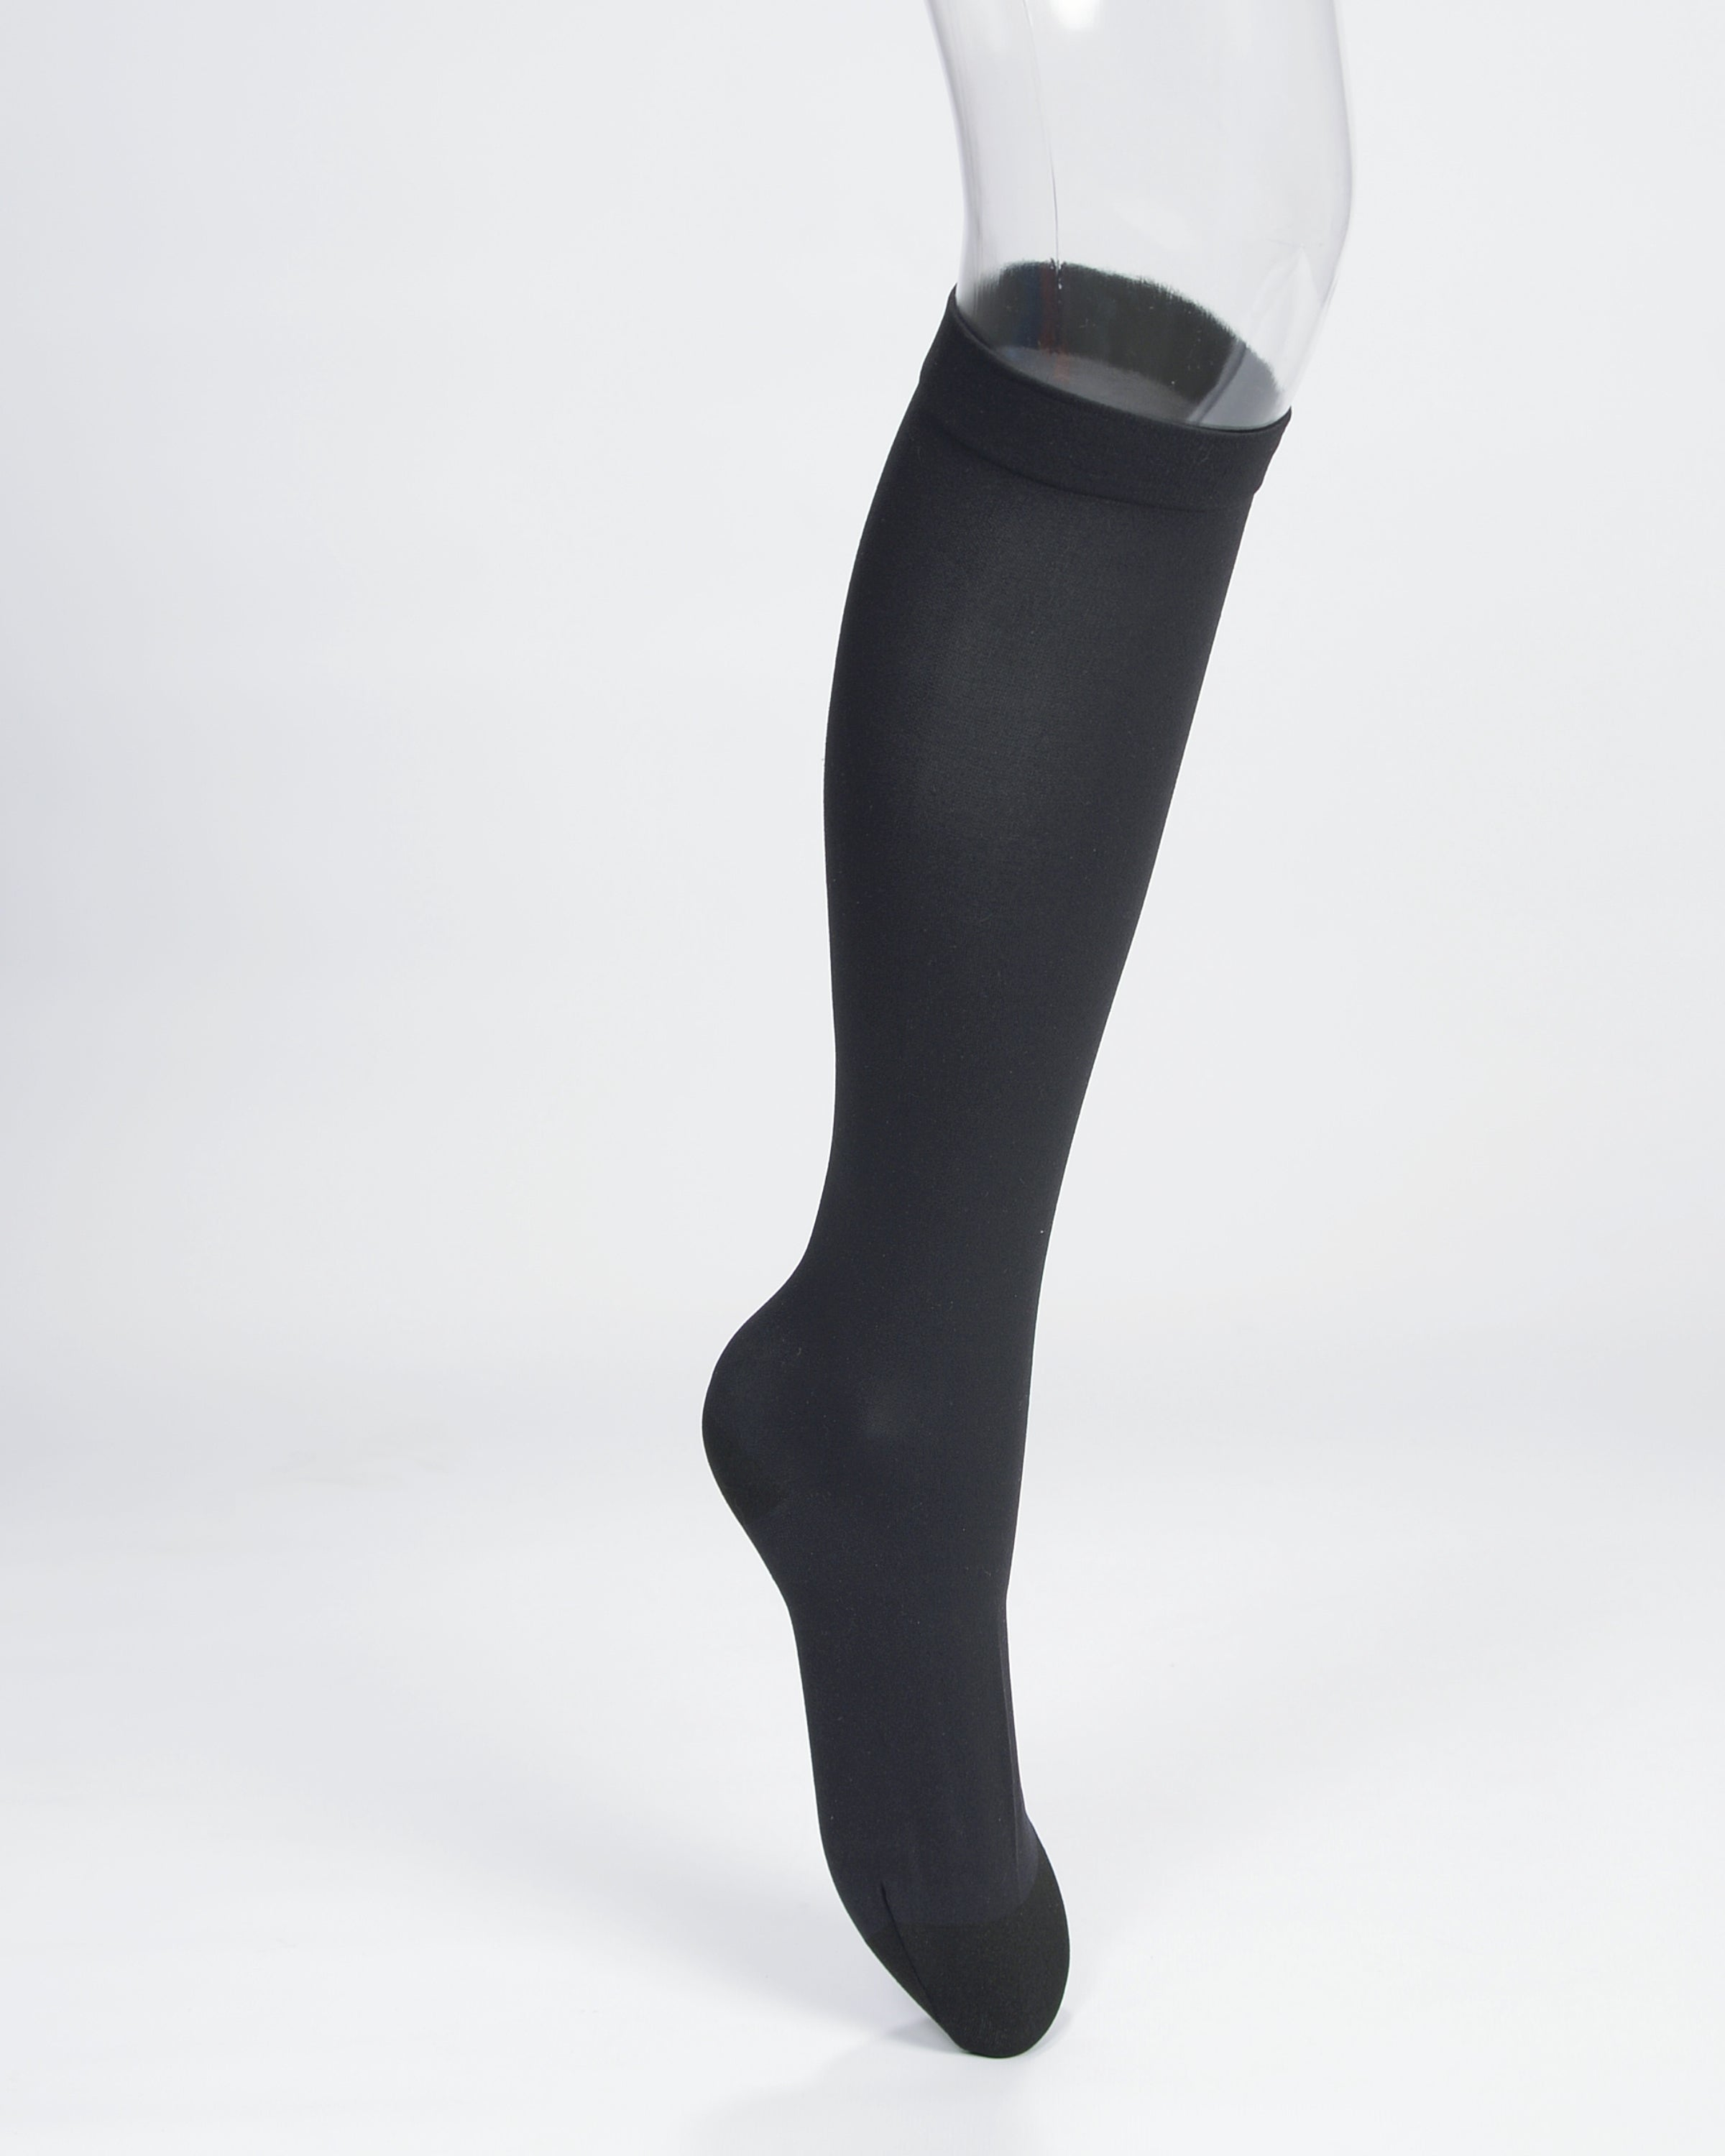 Gute Füße Designer Sheer Compression Hosiery (Black)